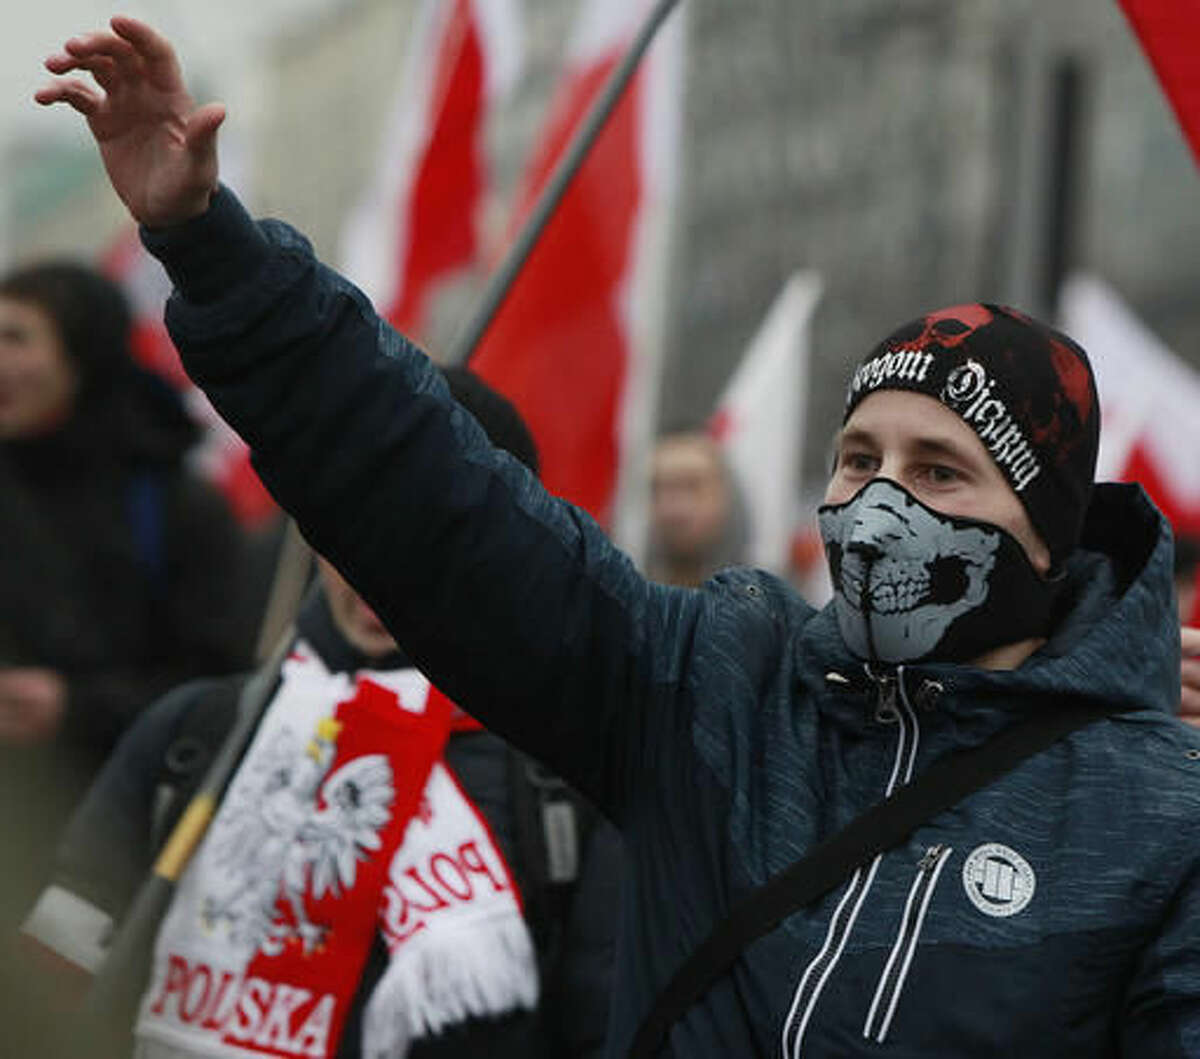 Nationalists, carrying Polish flags, as they march in large numbers through the streets of Warsaw to mark Poland's Independence Day in Warsaw, Poland, Friday, Nov. 11, 2016. (AP Photo/Czarek Sokolowski)